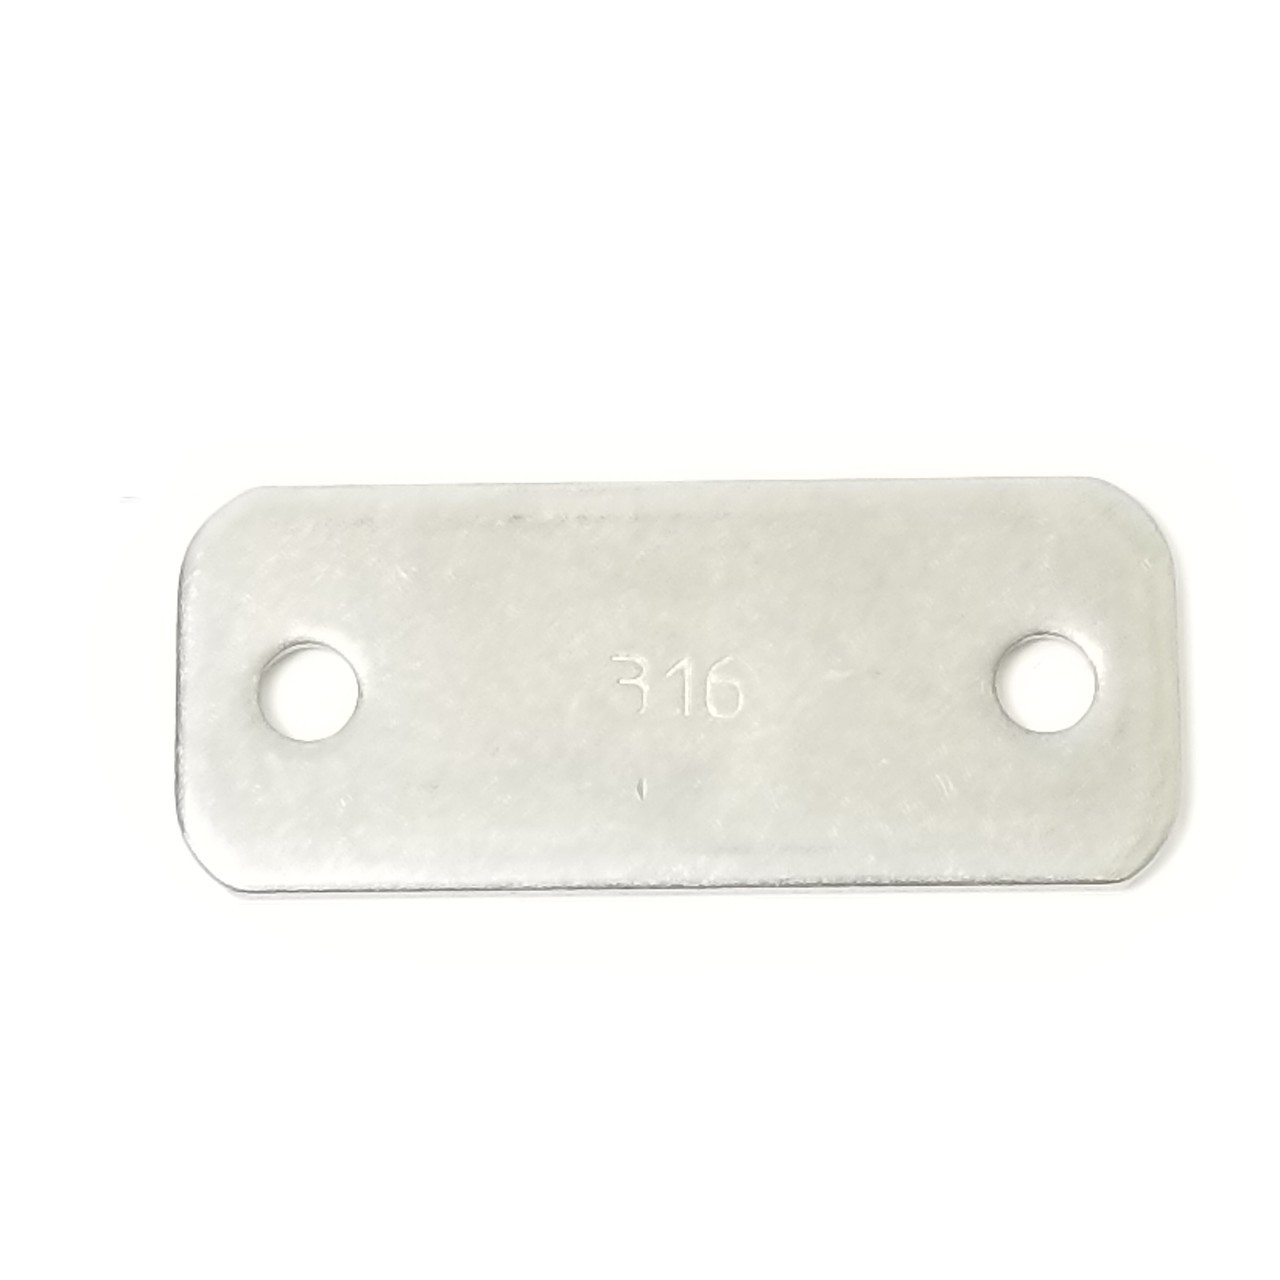 TP5316 Top plate